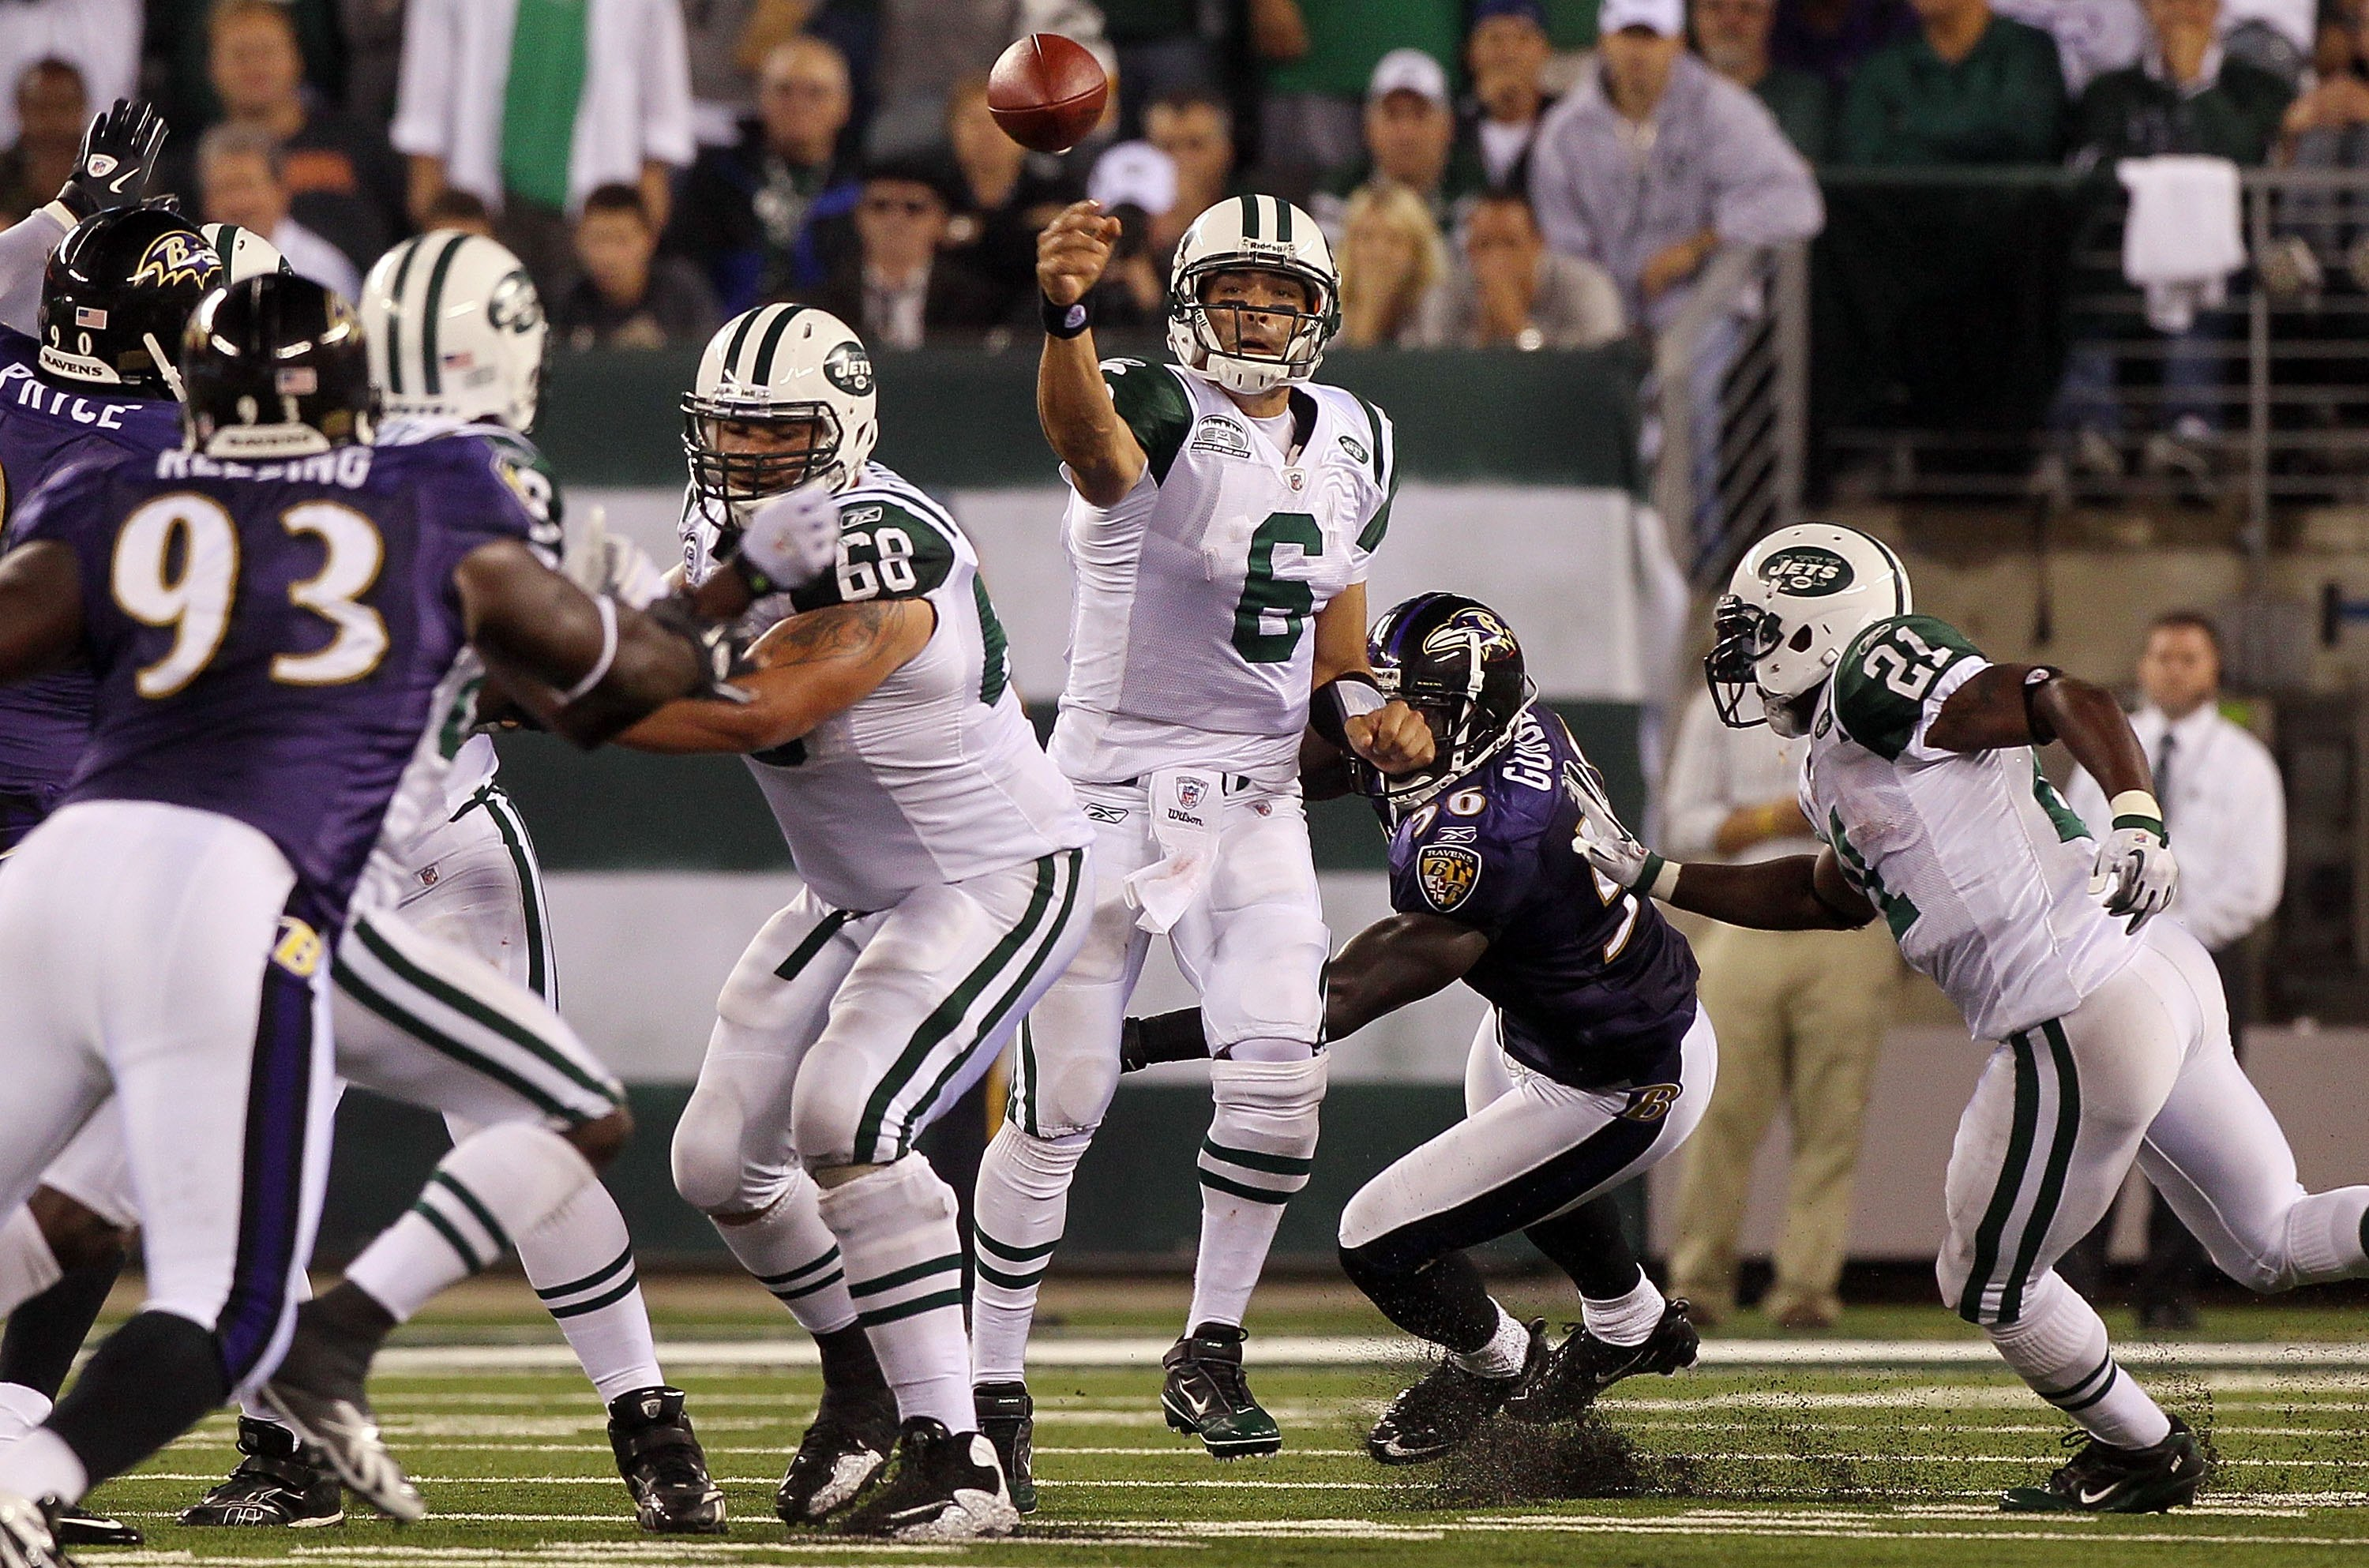 EAST RUTHERFORD, NJ - SEPTEMBER 13: Mark Sanchez #6 of the New York Jets throws against the Baltimore Ravens during their home opener at the New Meadowlands Stadium on September 13, 2010 in East Rutherford, New Jersey. (Photo by Jim McIsaac/Getty Images)